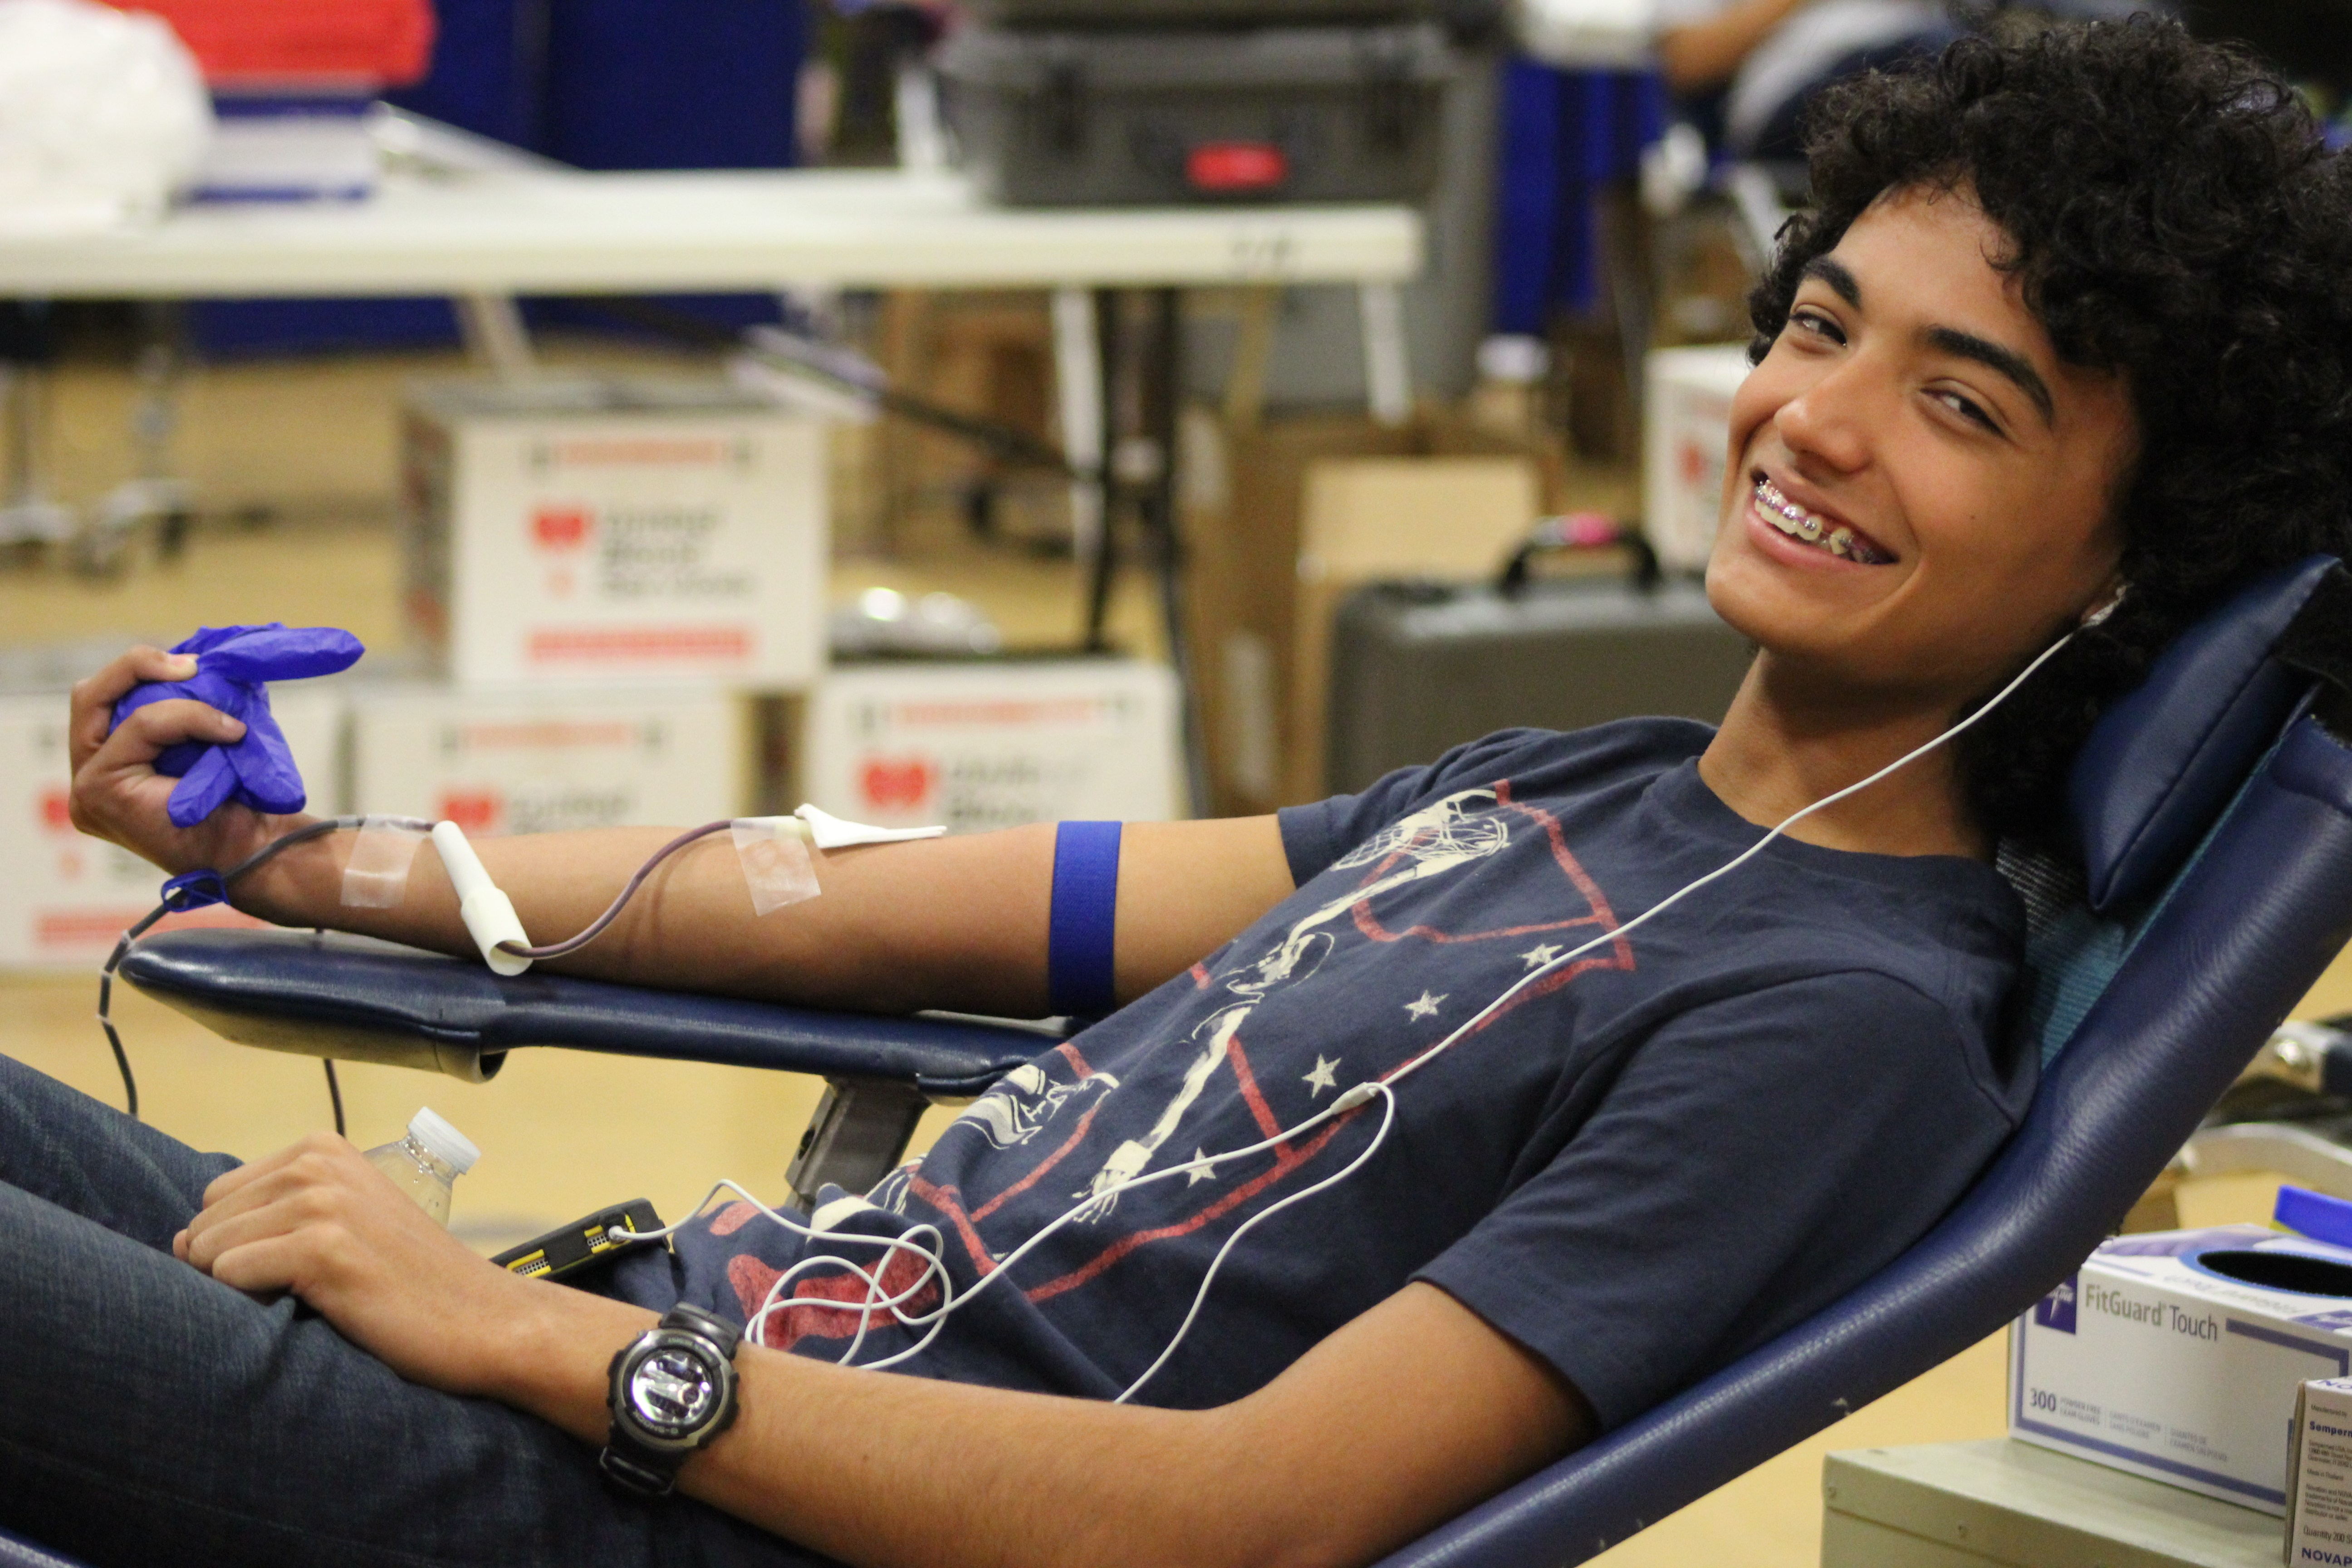 Student donating blood.